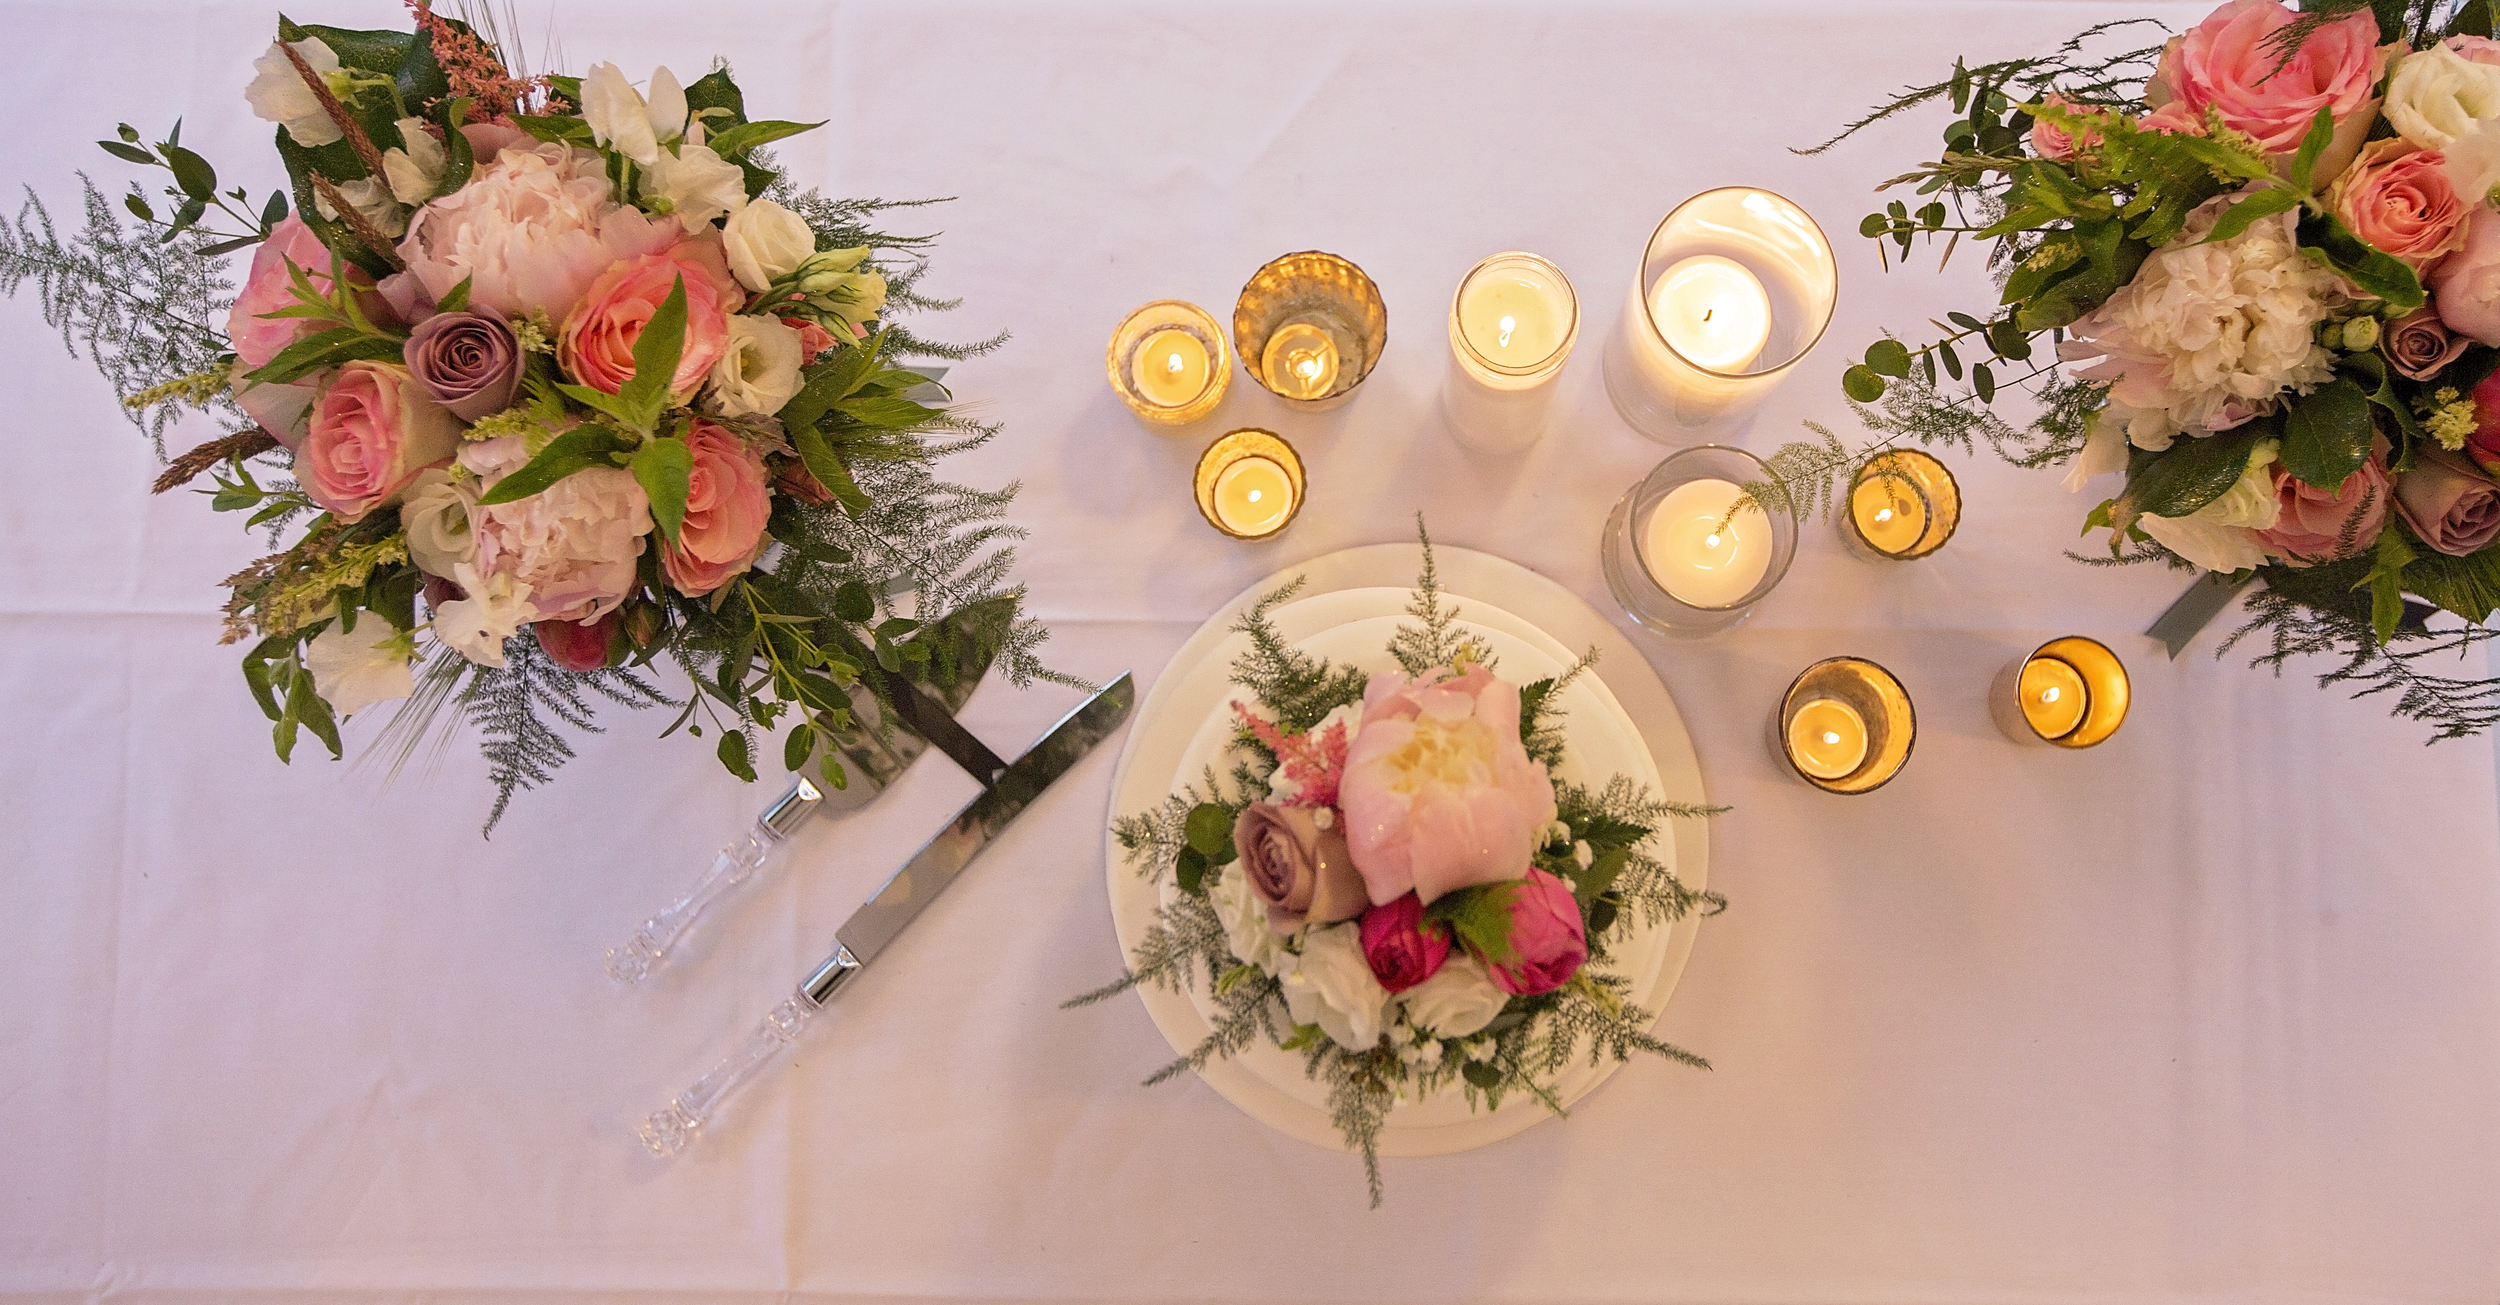 Beautiful shot of the cake table decorated with bridal bouquets.